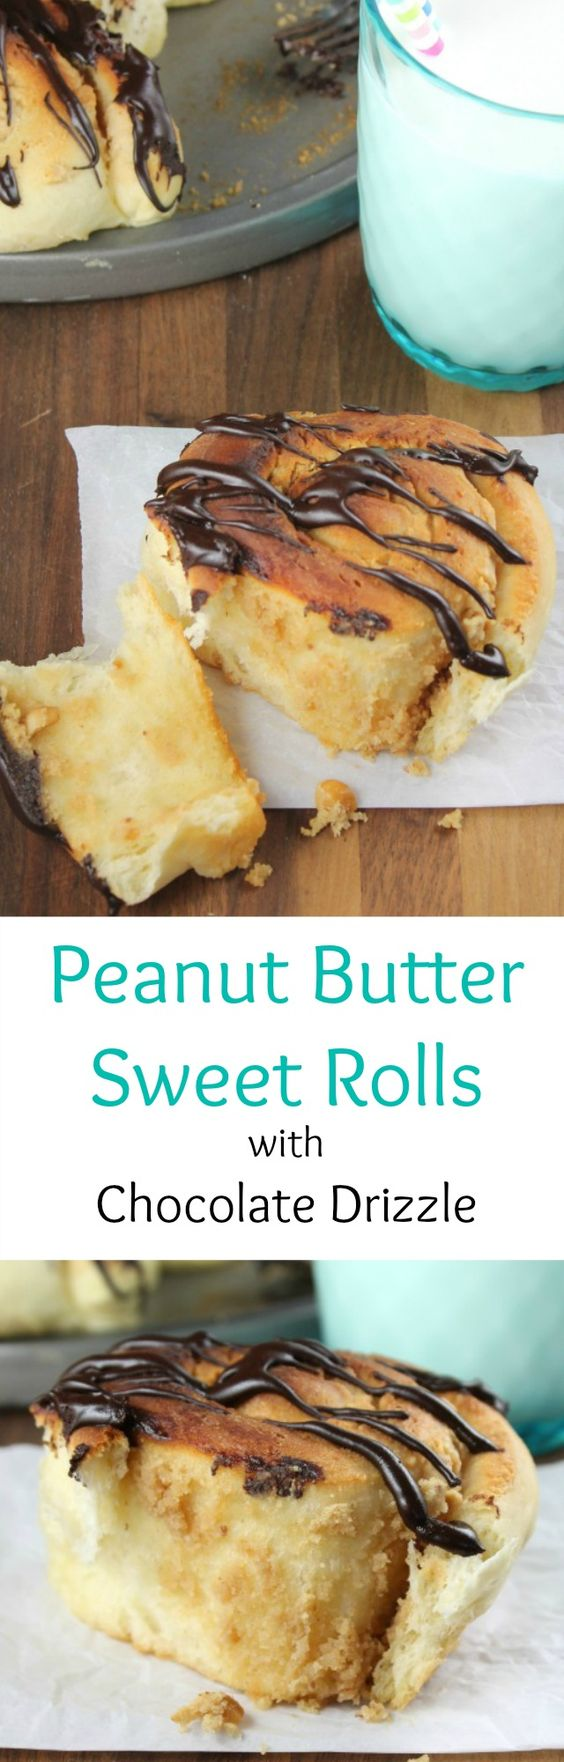 Peanut Butter Sweet Rolls with Chocolate Drizzle | Recipe | Butter ...